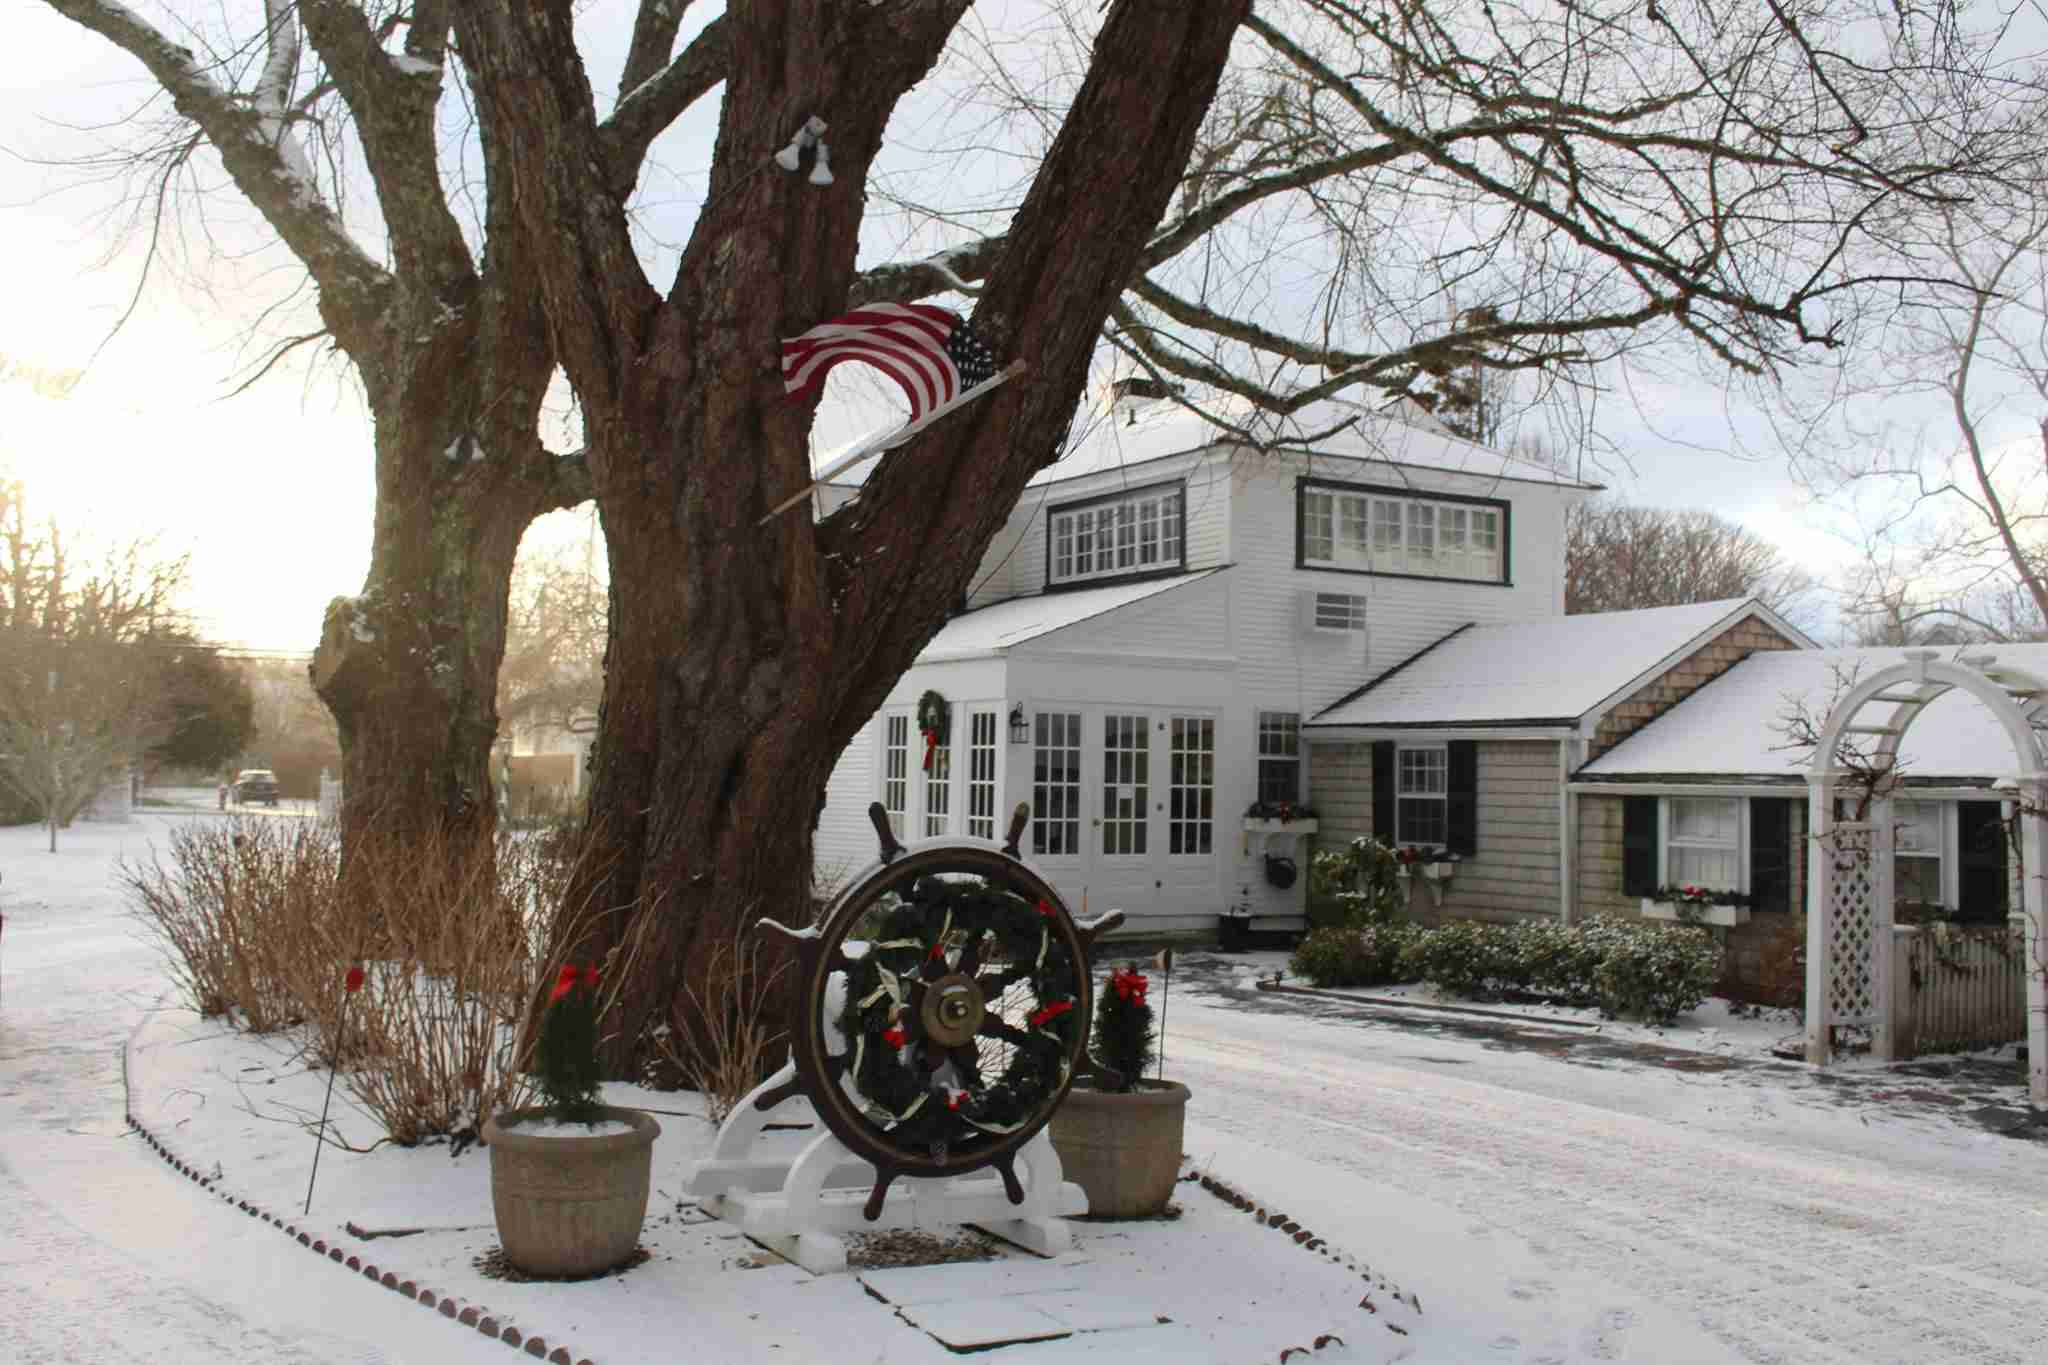 A snowy day with cottage in background